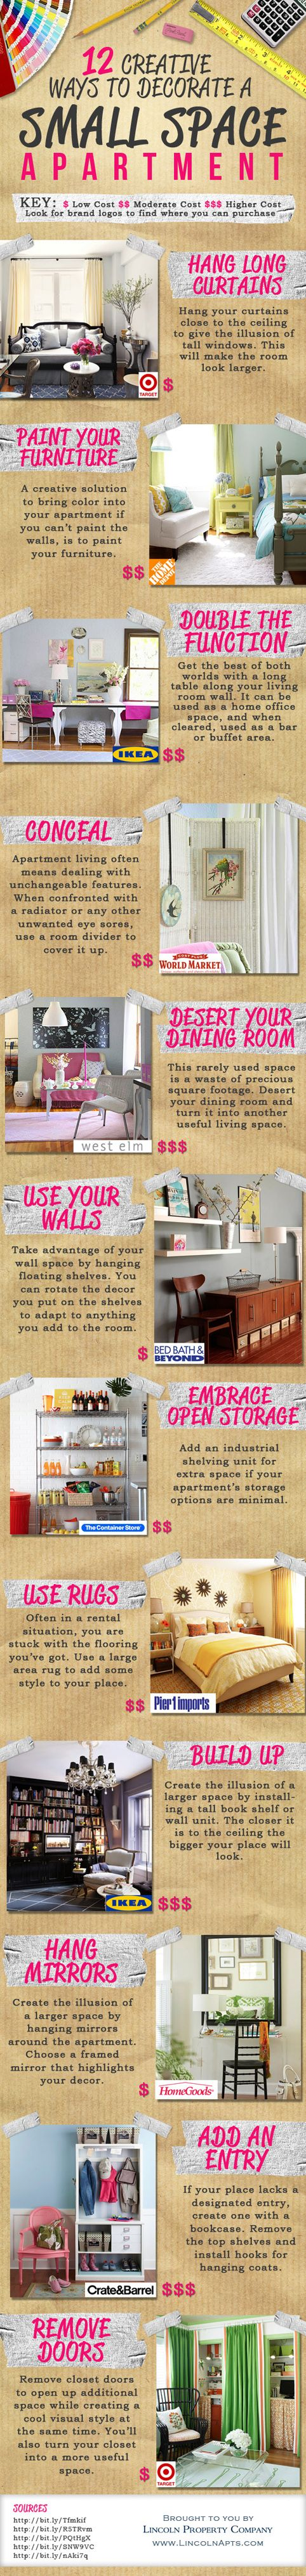 Creative ways to decorate a small space. Perfect for a NYC studio! Get your NYC apartment needs at Duane Reade or go to DuaneReade.com.